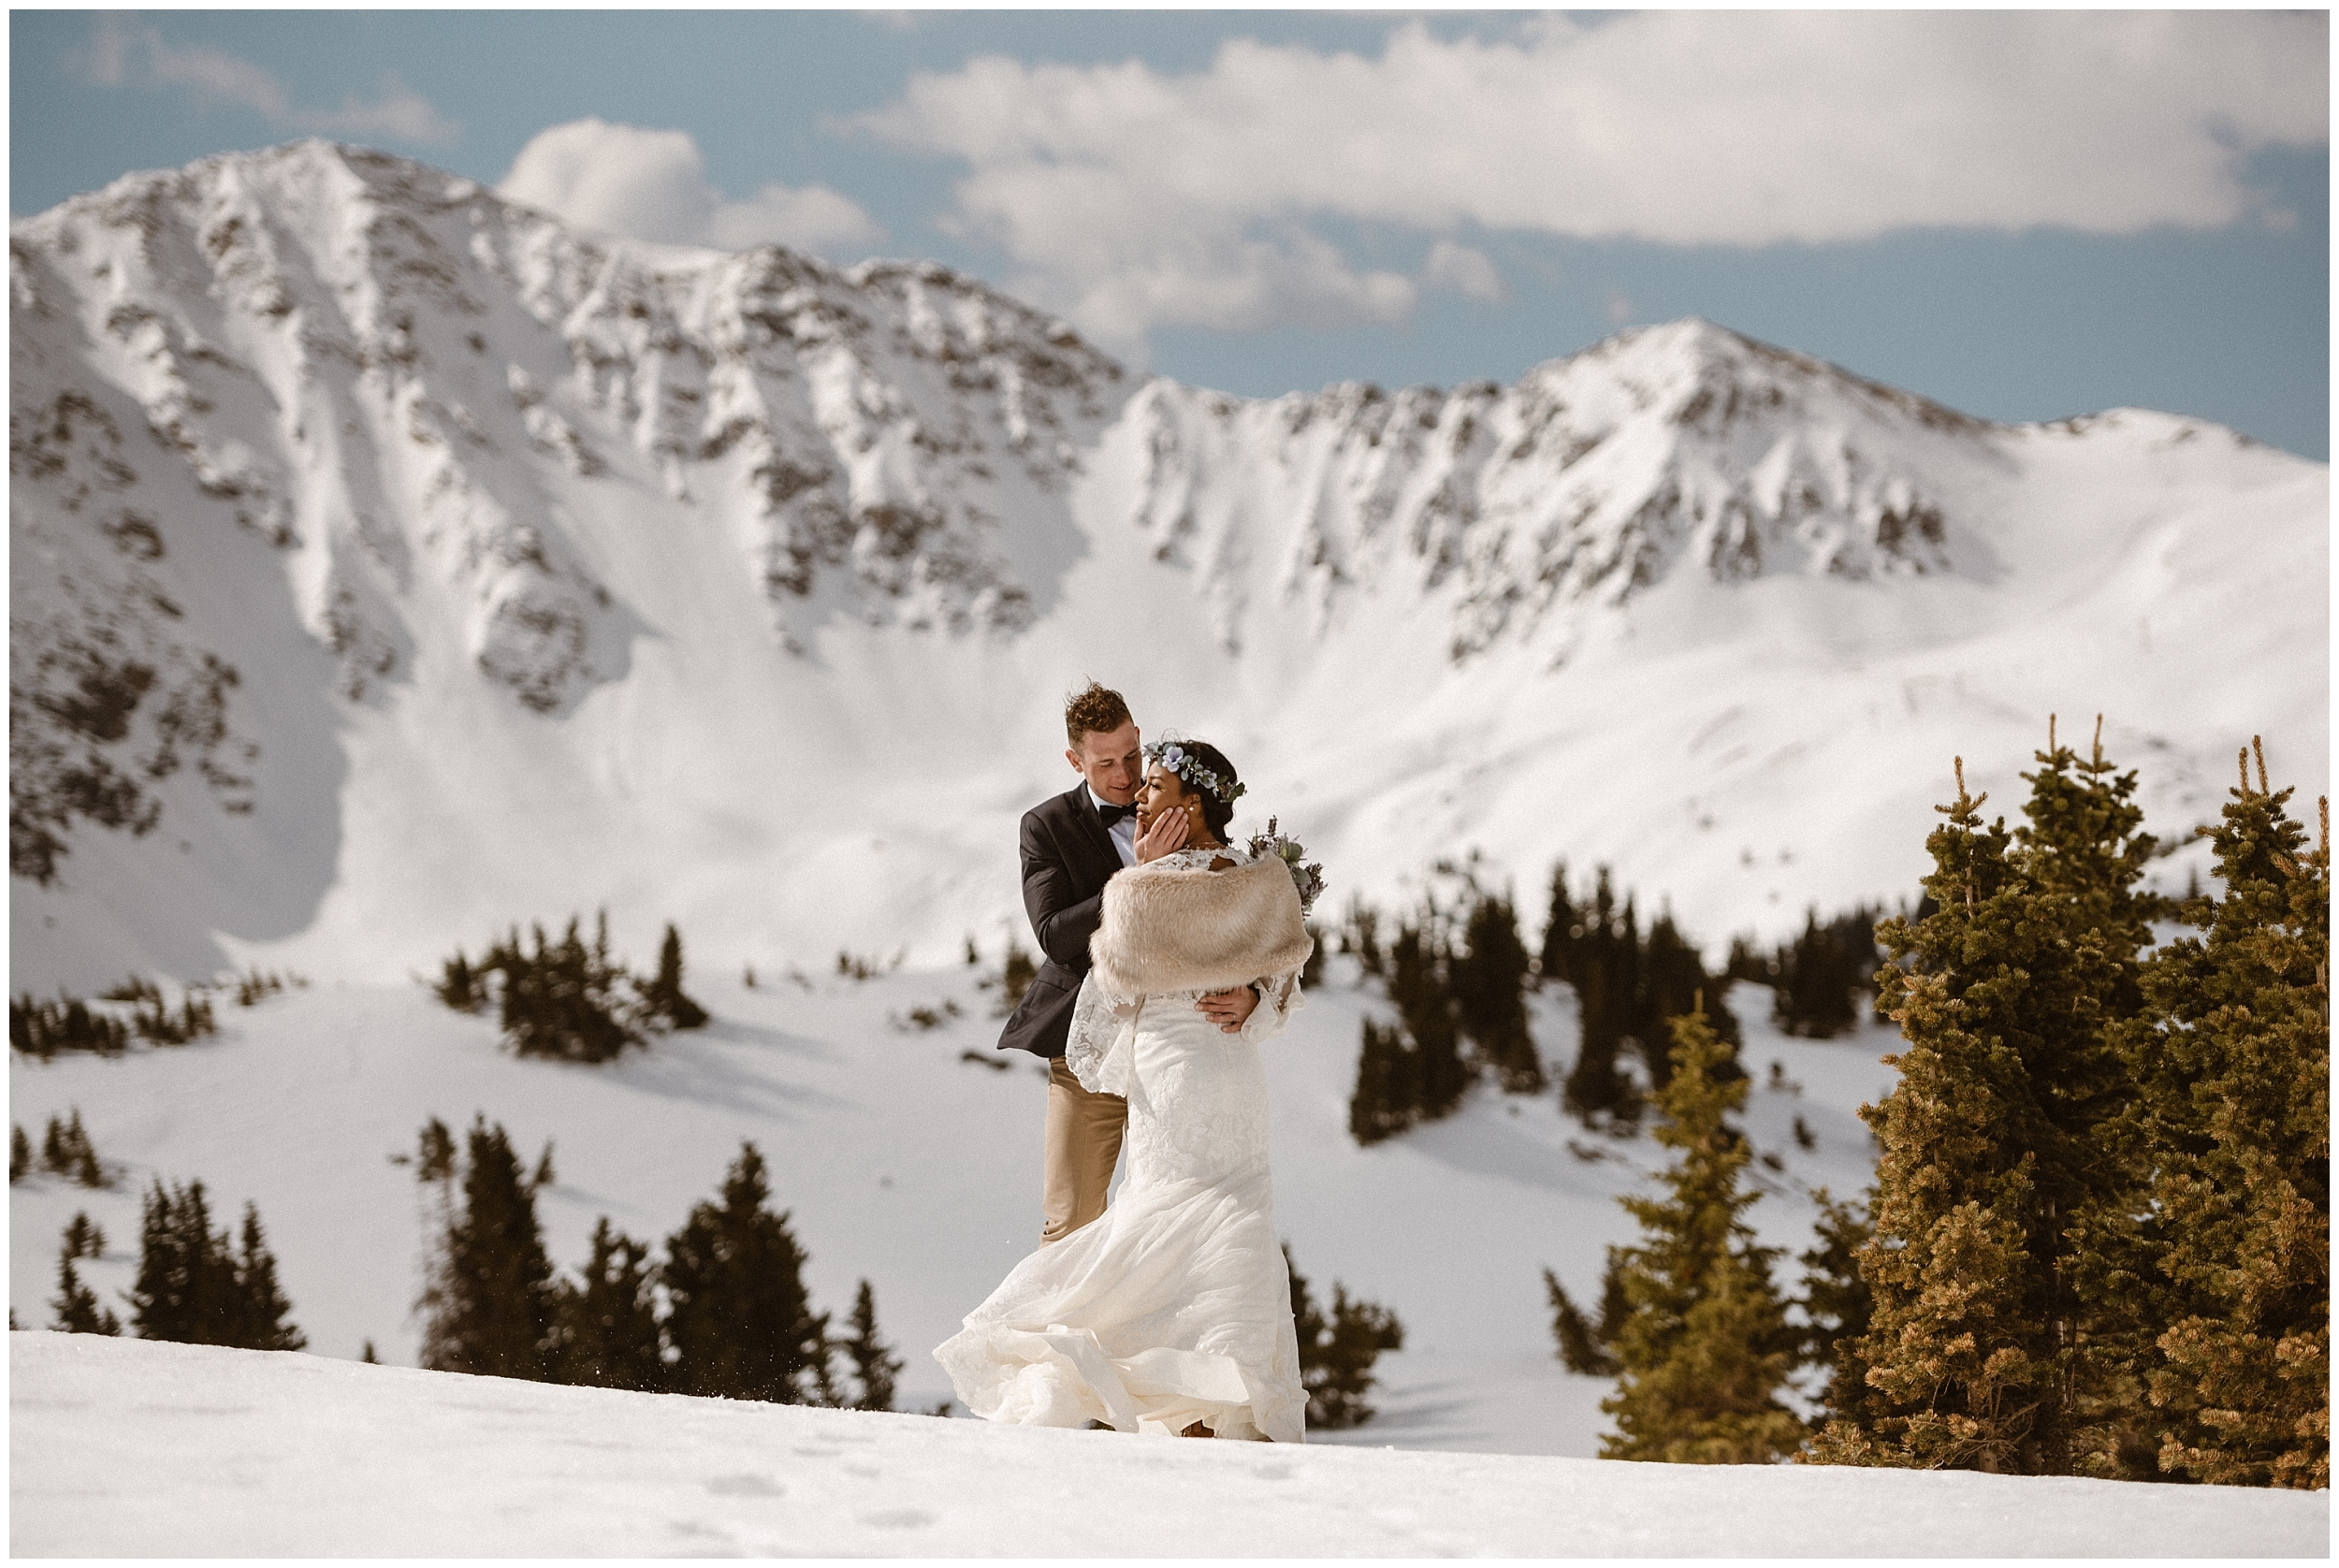 A bride and groom hold each other close in a snowy, alpine environment. This Colorado Mountain wedding was everything this couple wanted for their unique destination elopement.